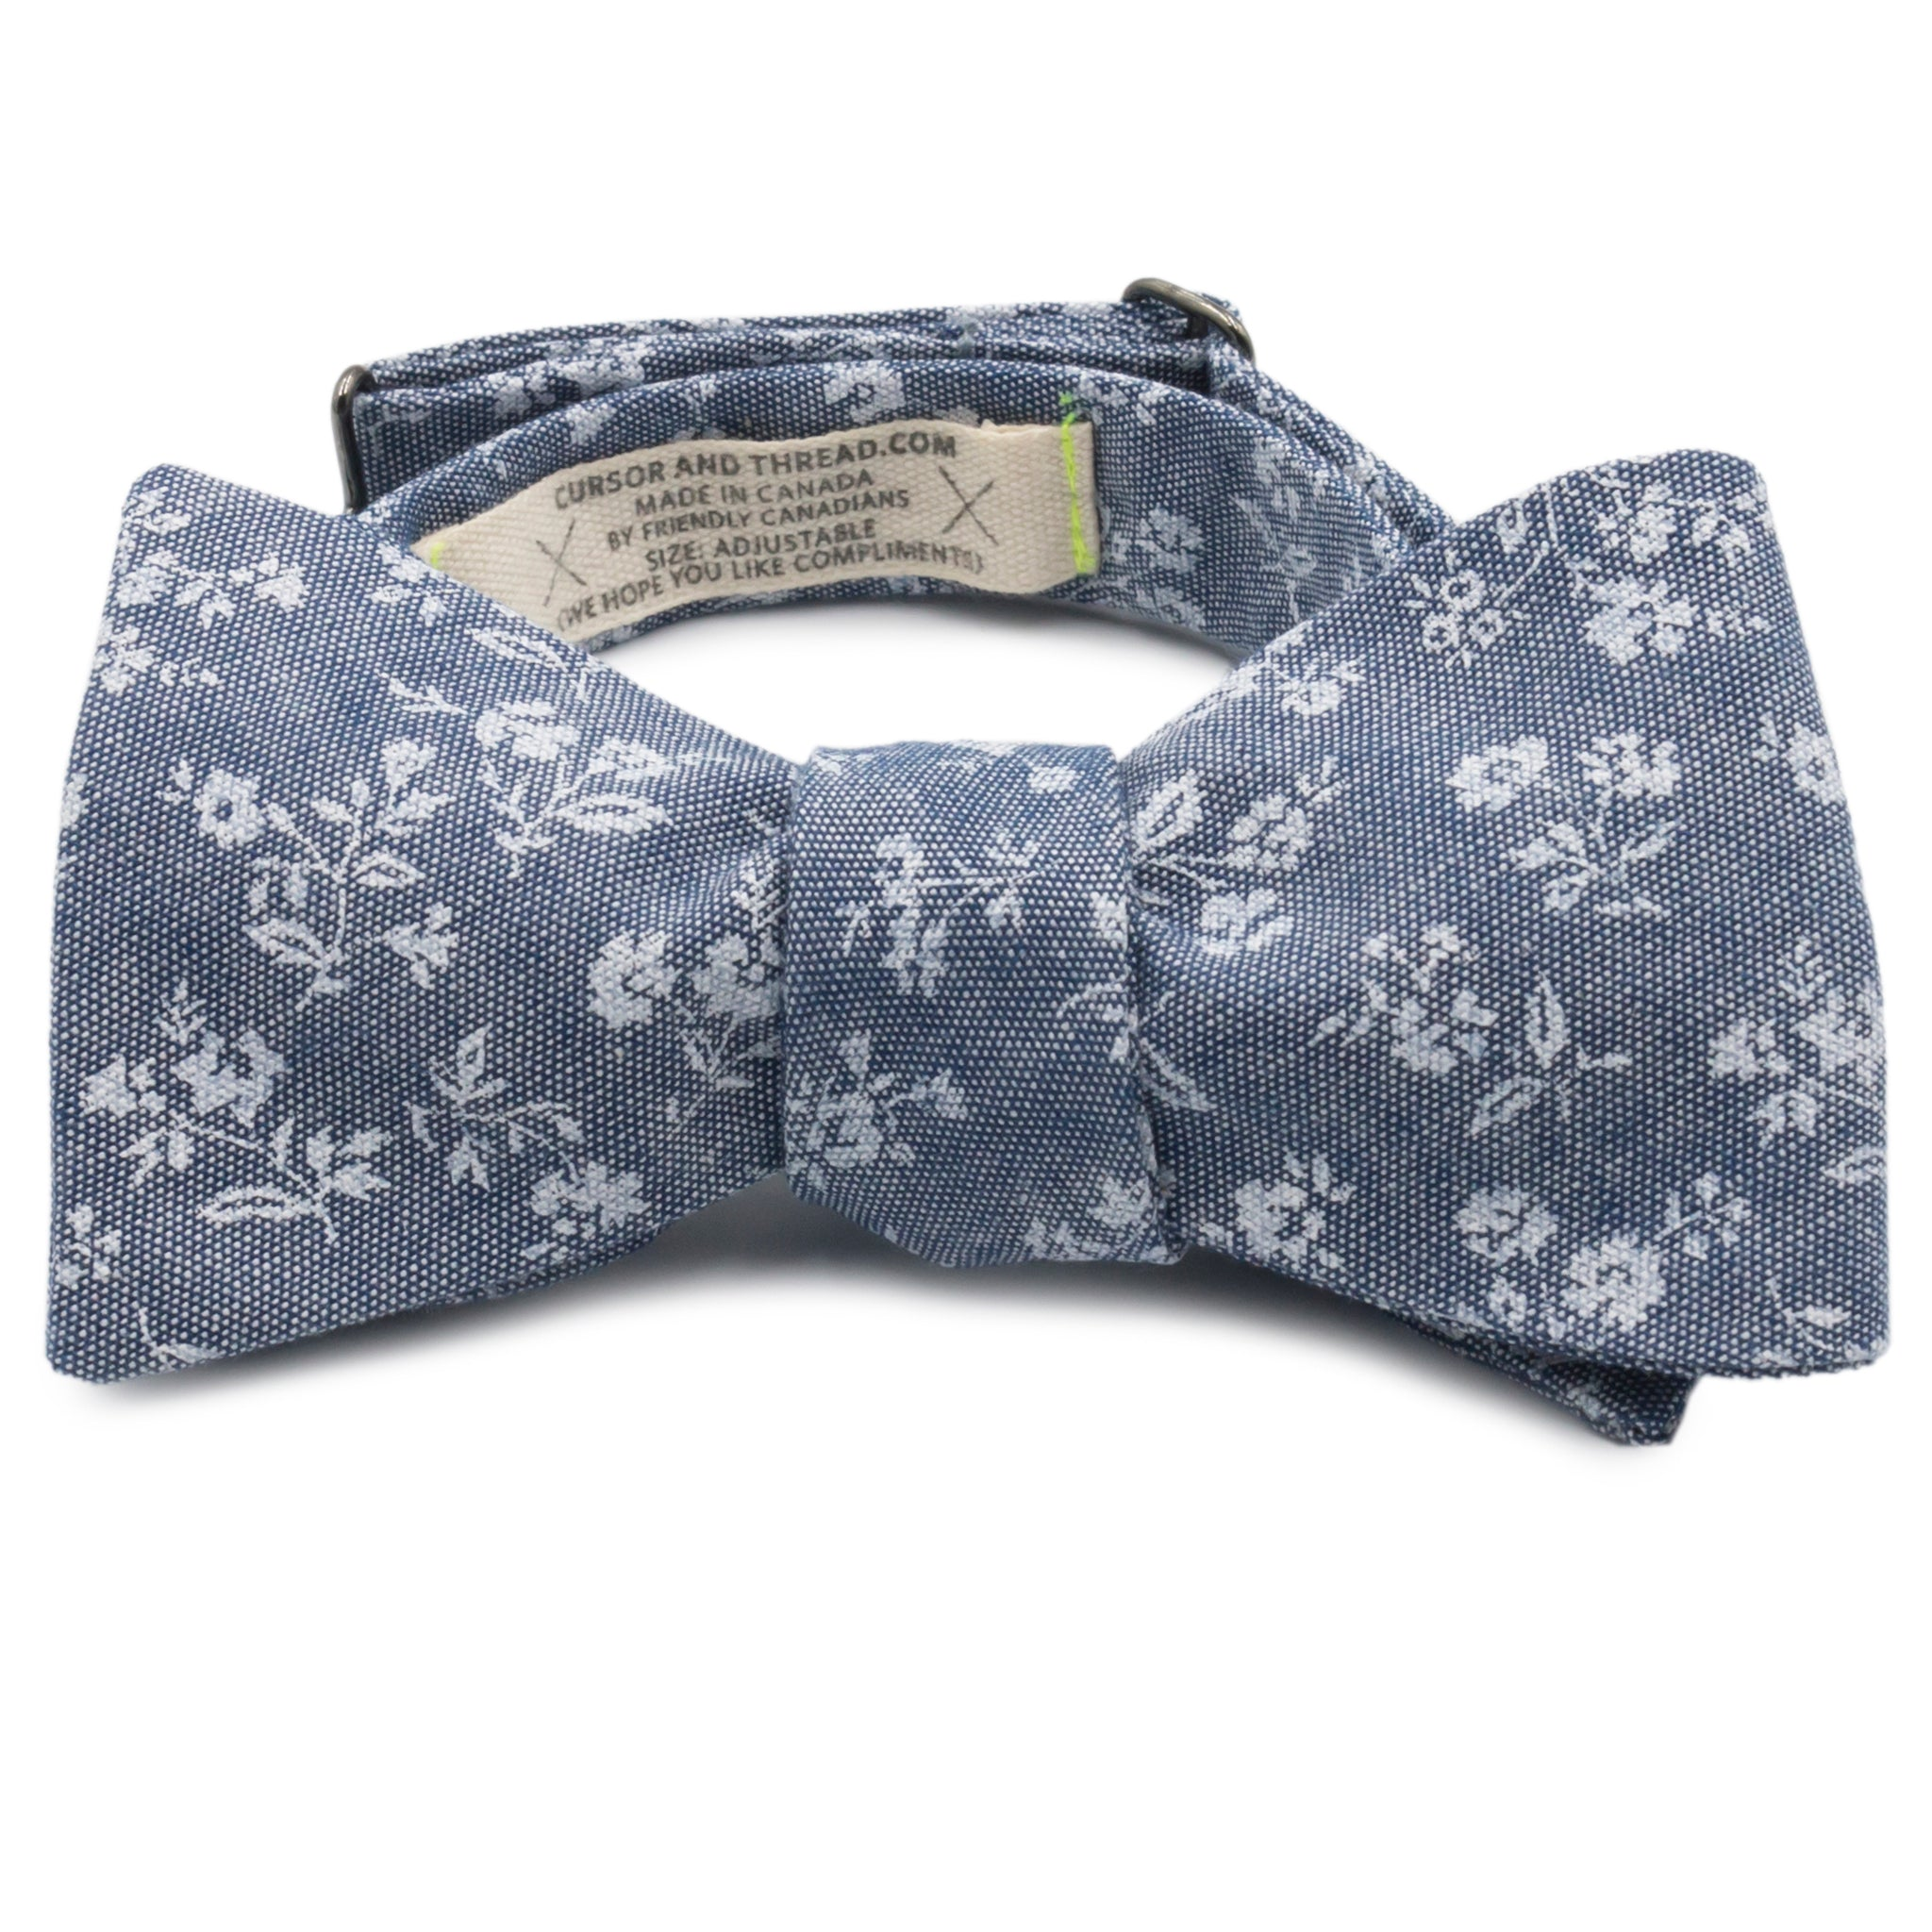 Chintz Floral Print on Grey Cotton Chambray Bow Tie Made in Canada